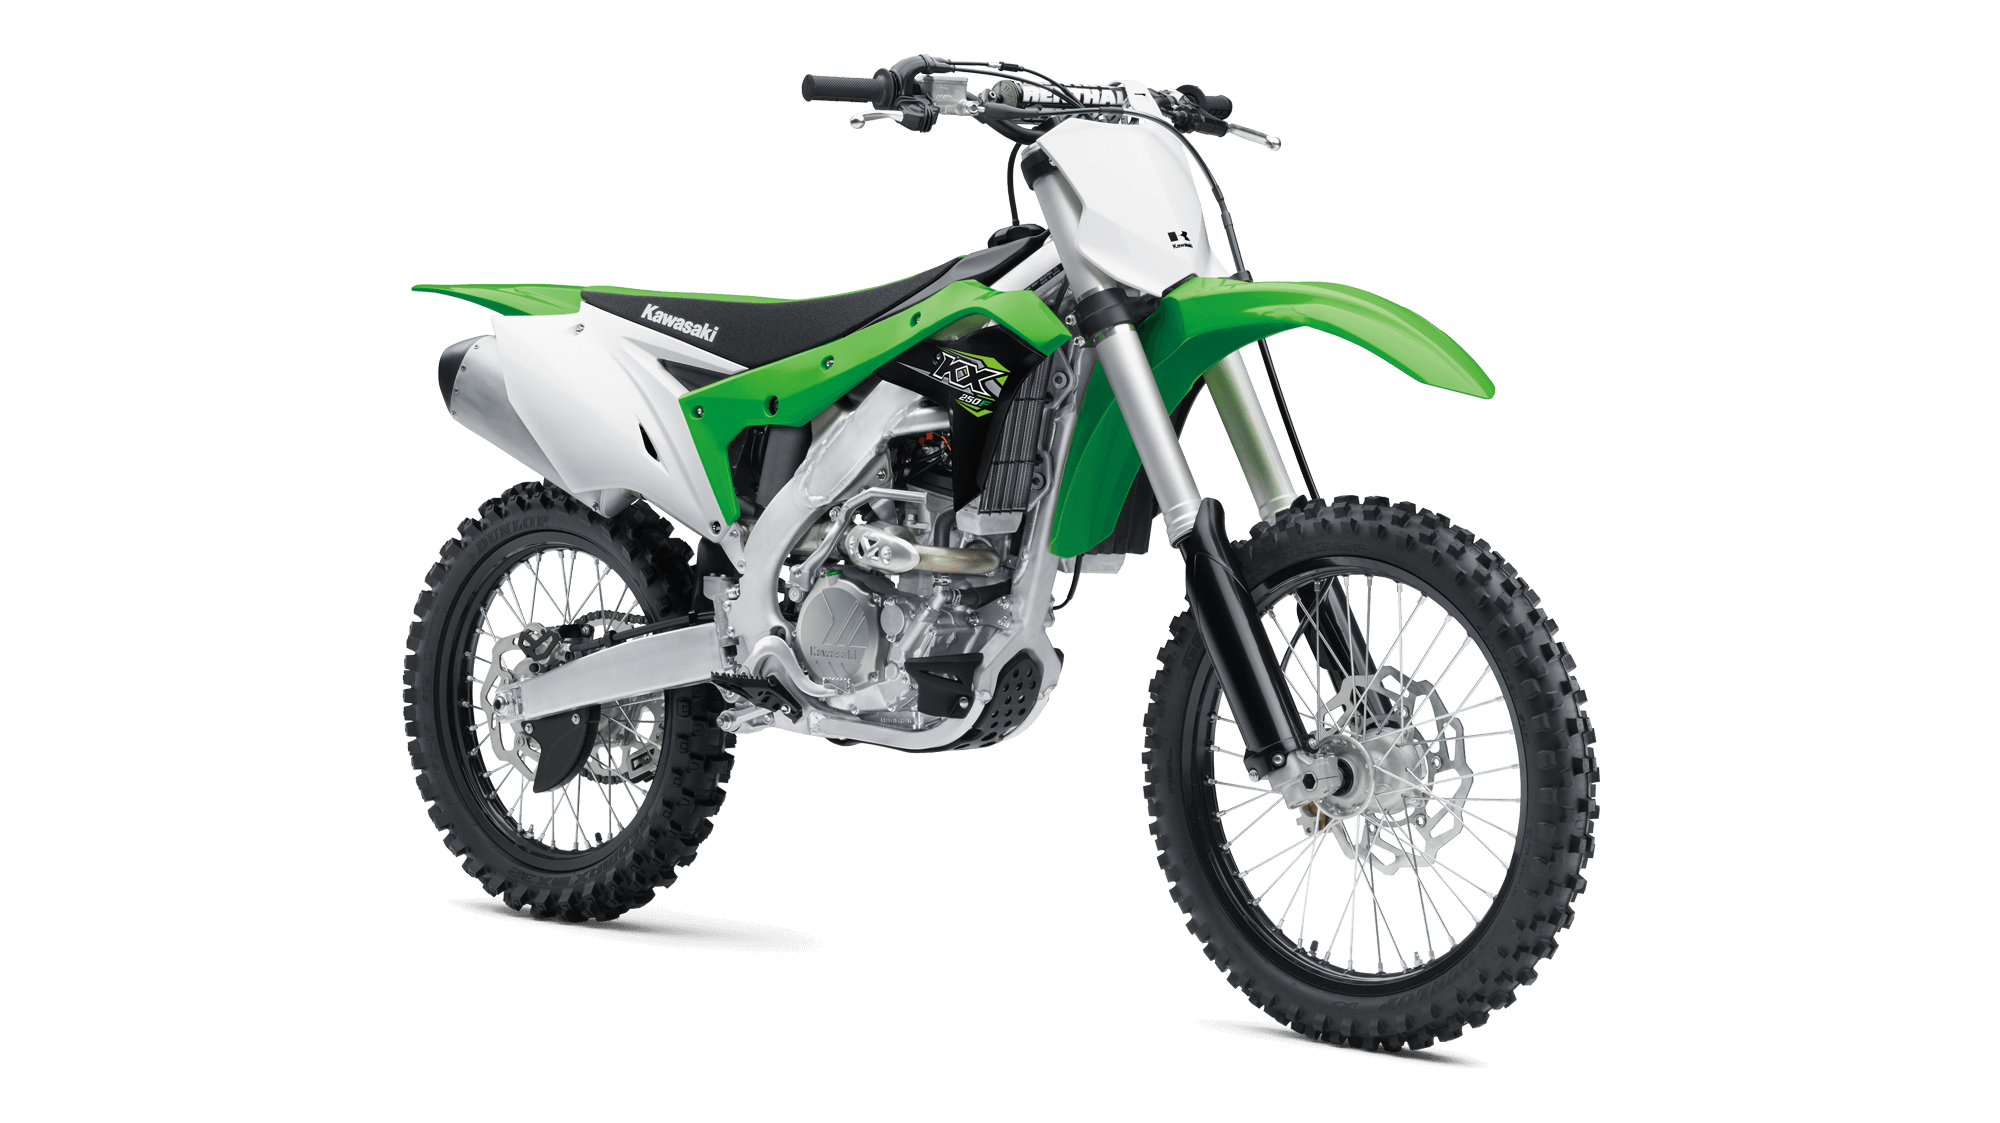 kawasaki 250 dirt bike for sale